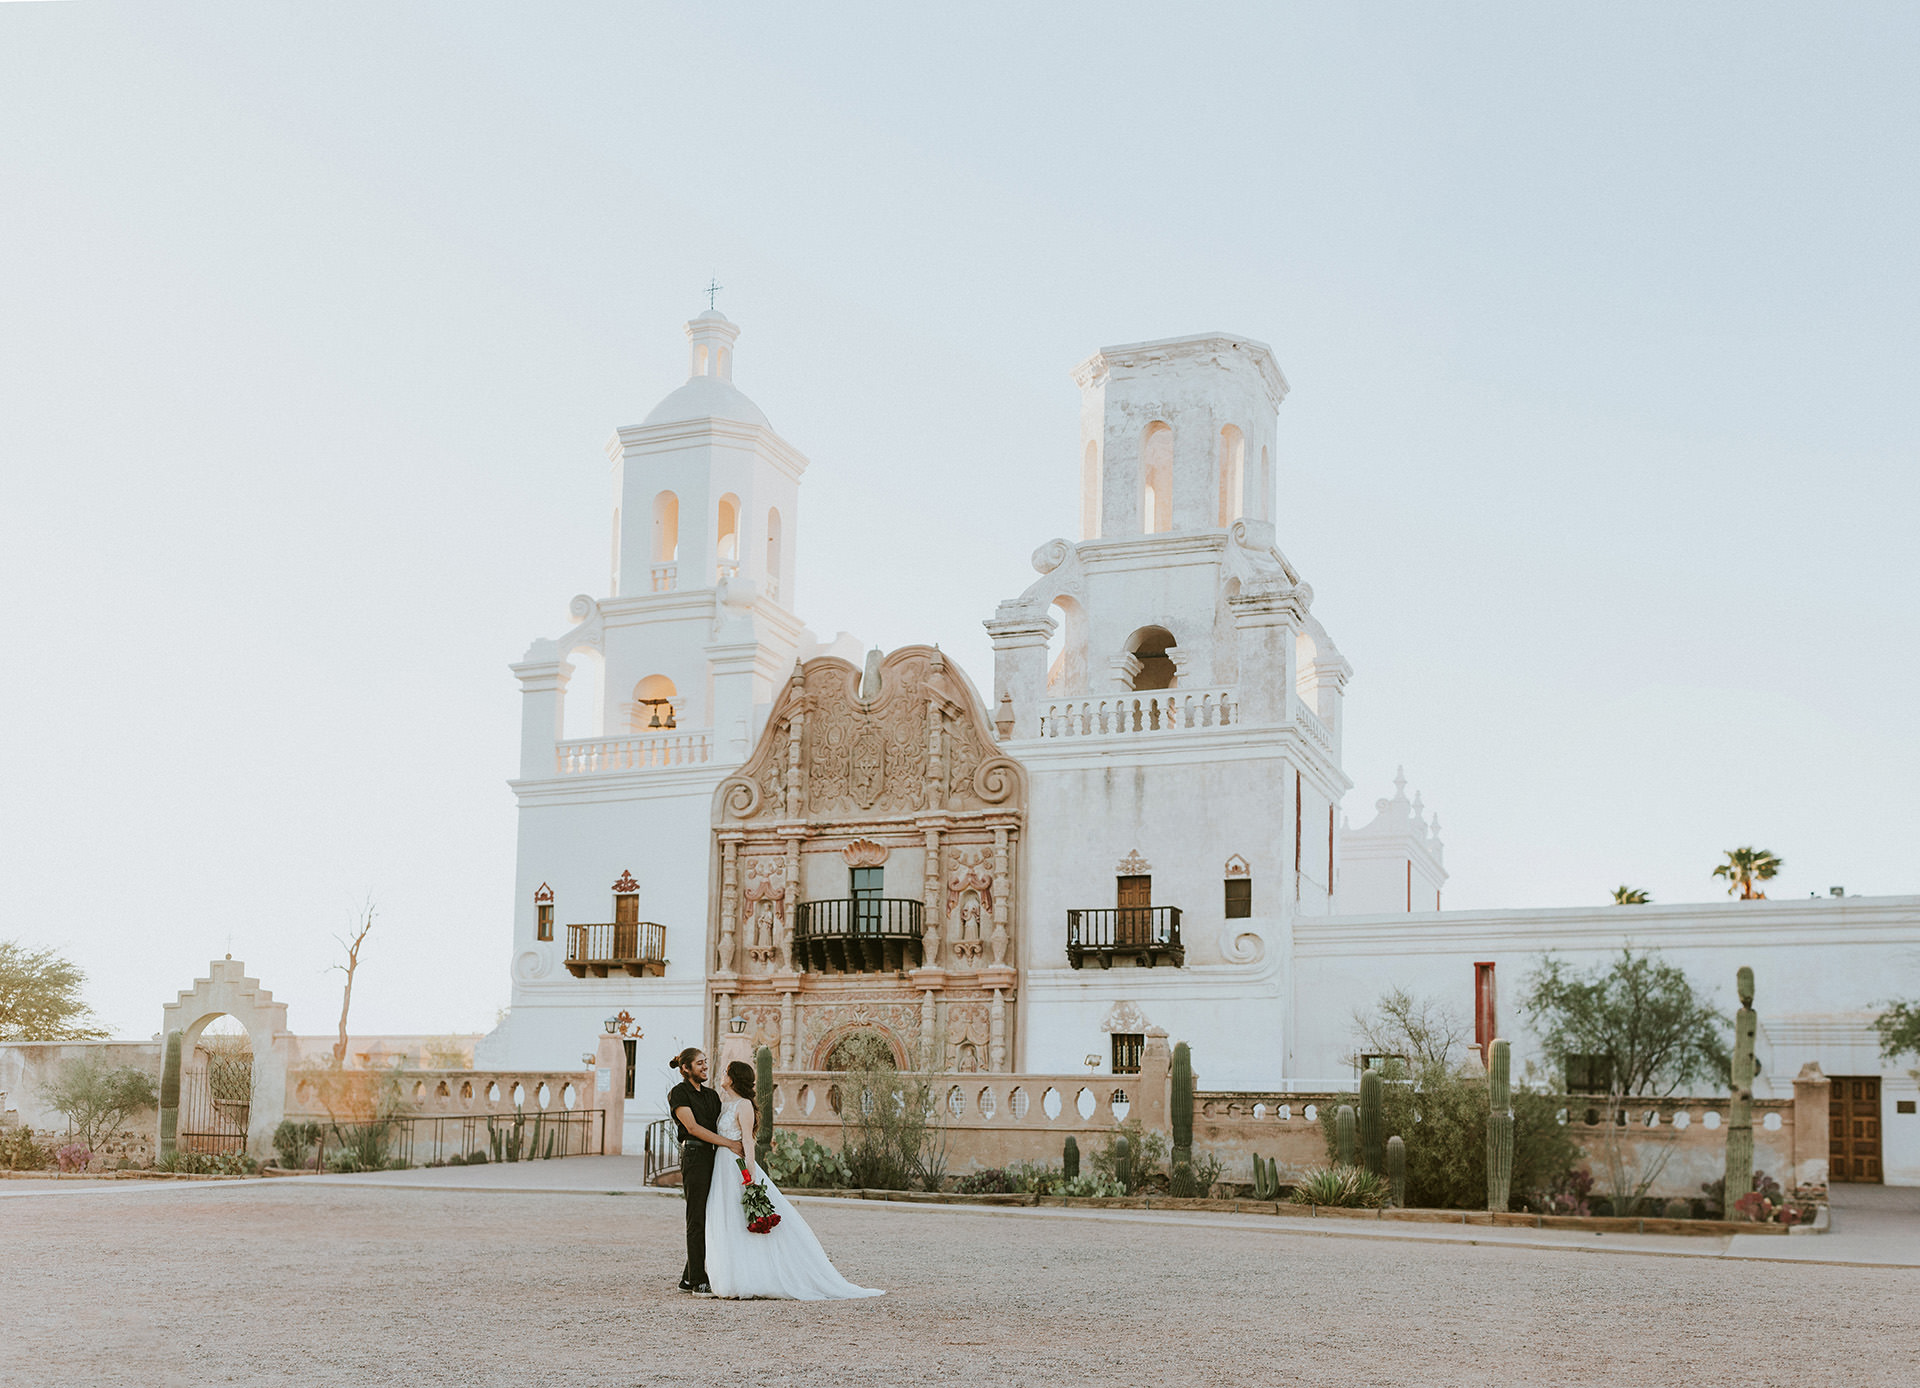 Picking A Name For Your Wedding Photography Business